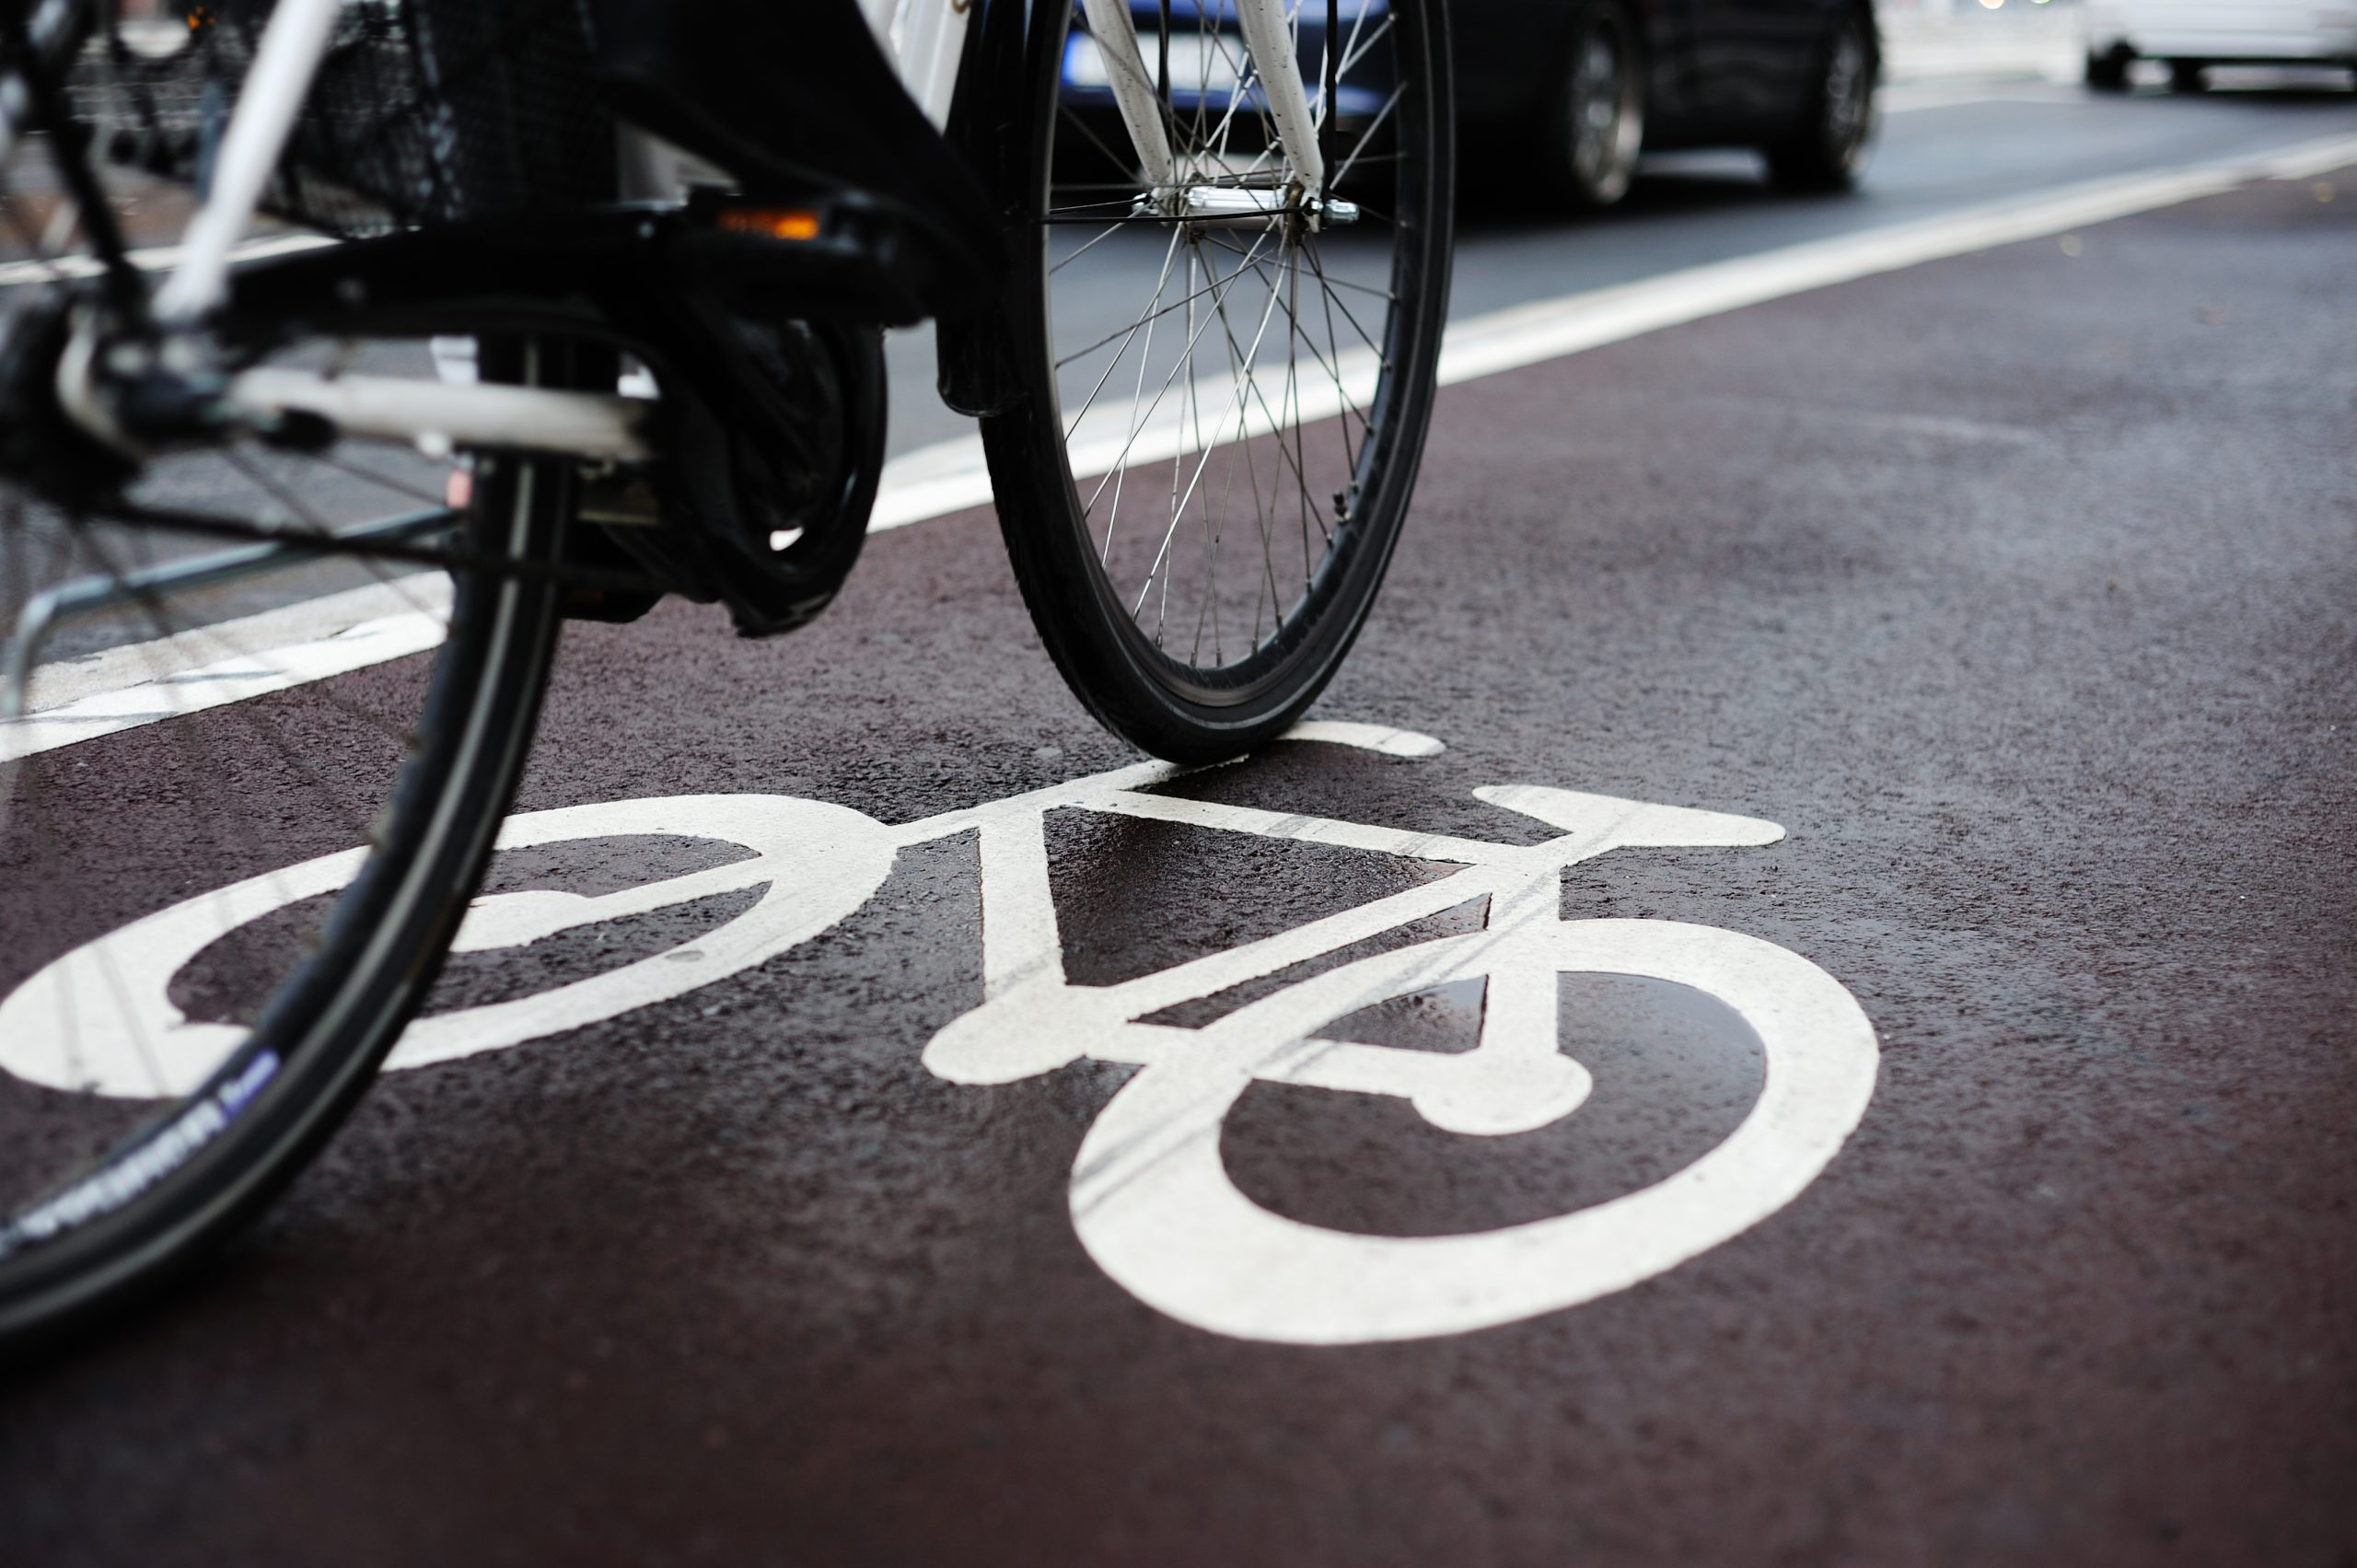 Person riding a bike in a bike lane. Biking laws in Kentucky require drivers to use bike paths if available.